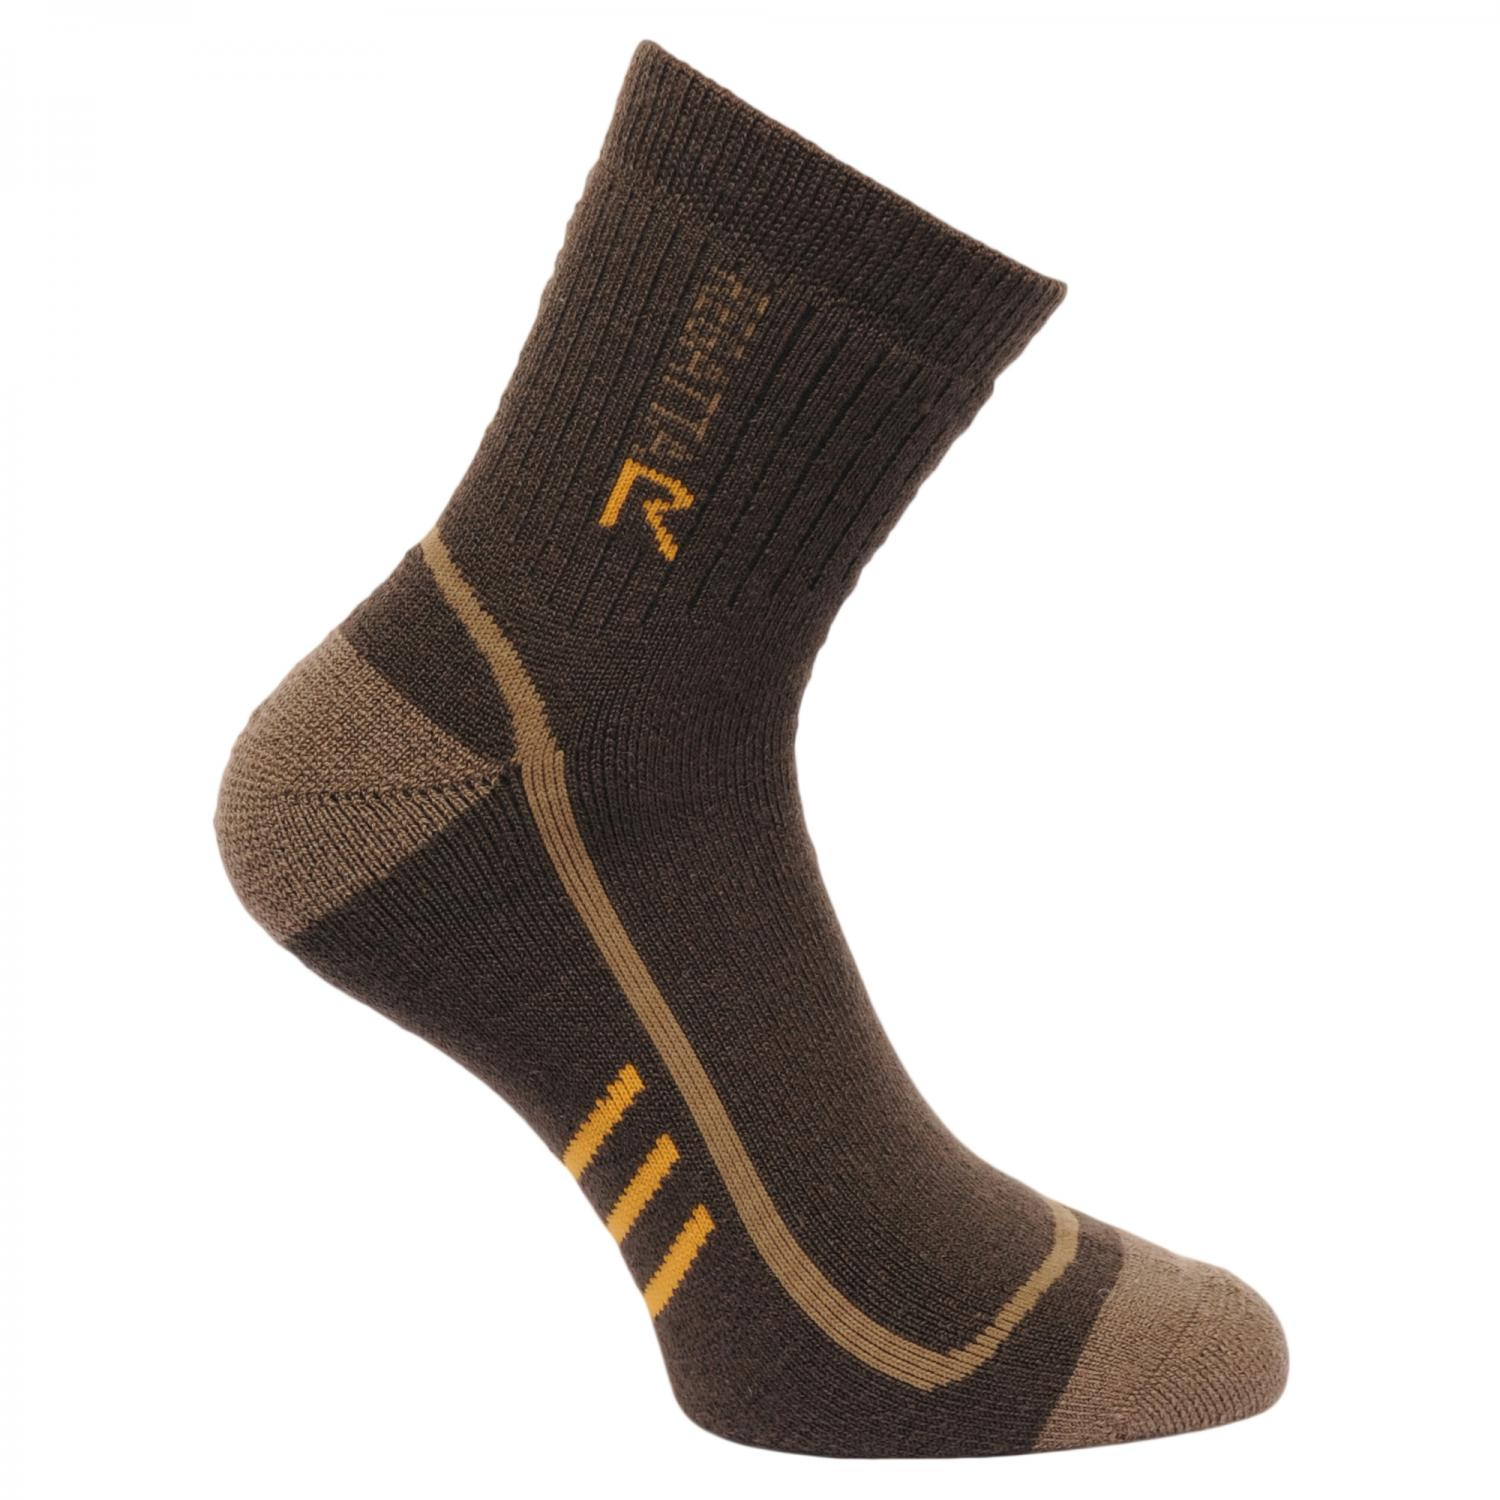 Mens 3 Season Heavyweight Trek and Trail Socks Clove